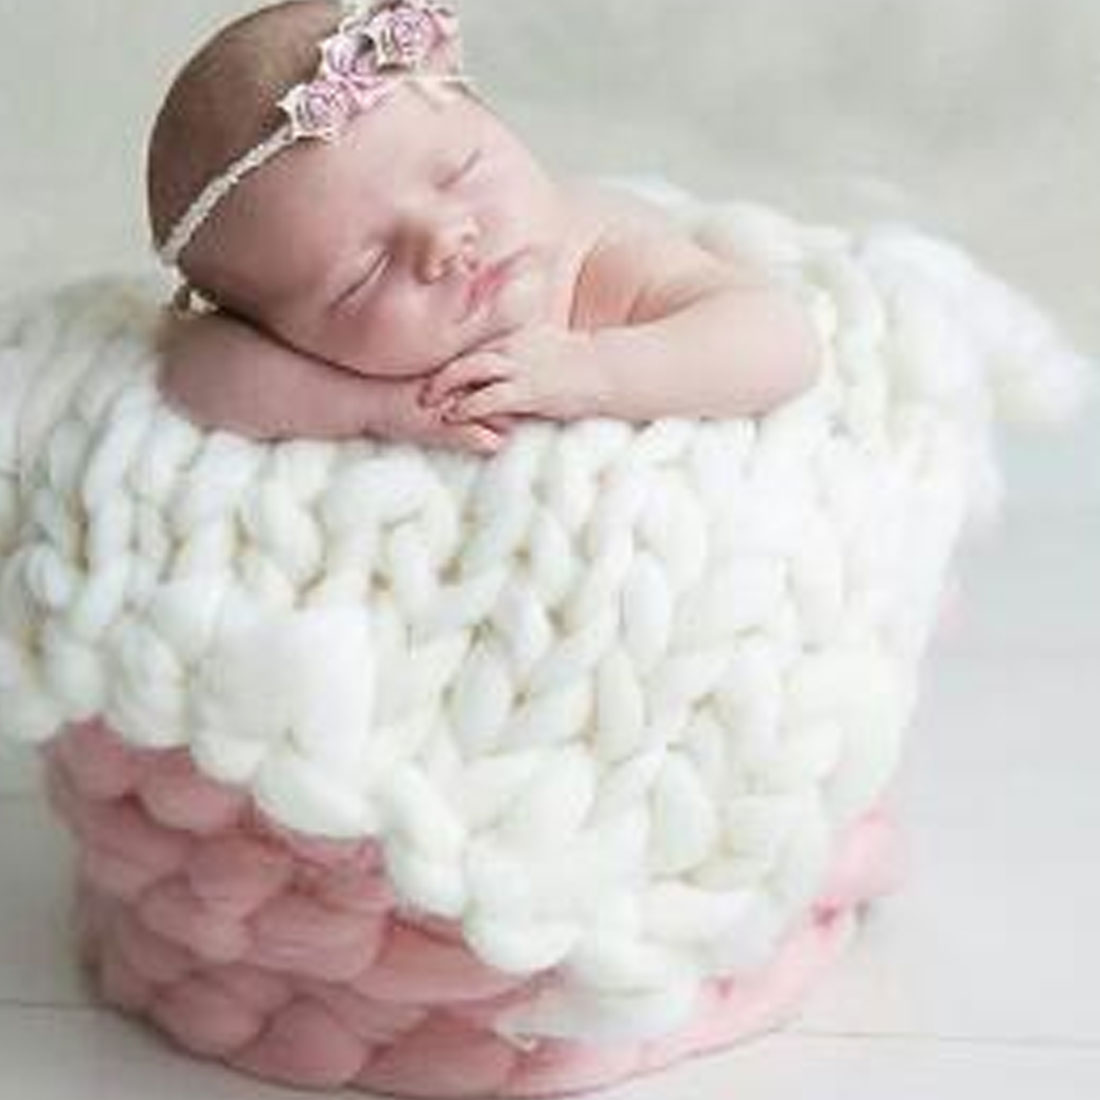 New Arrivals Knitted Wool Crochet Baby Blanket Newborn Photography Props Chunky Knit Blanket Basket Filler 45*50